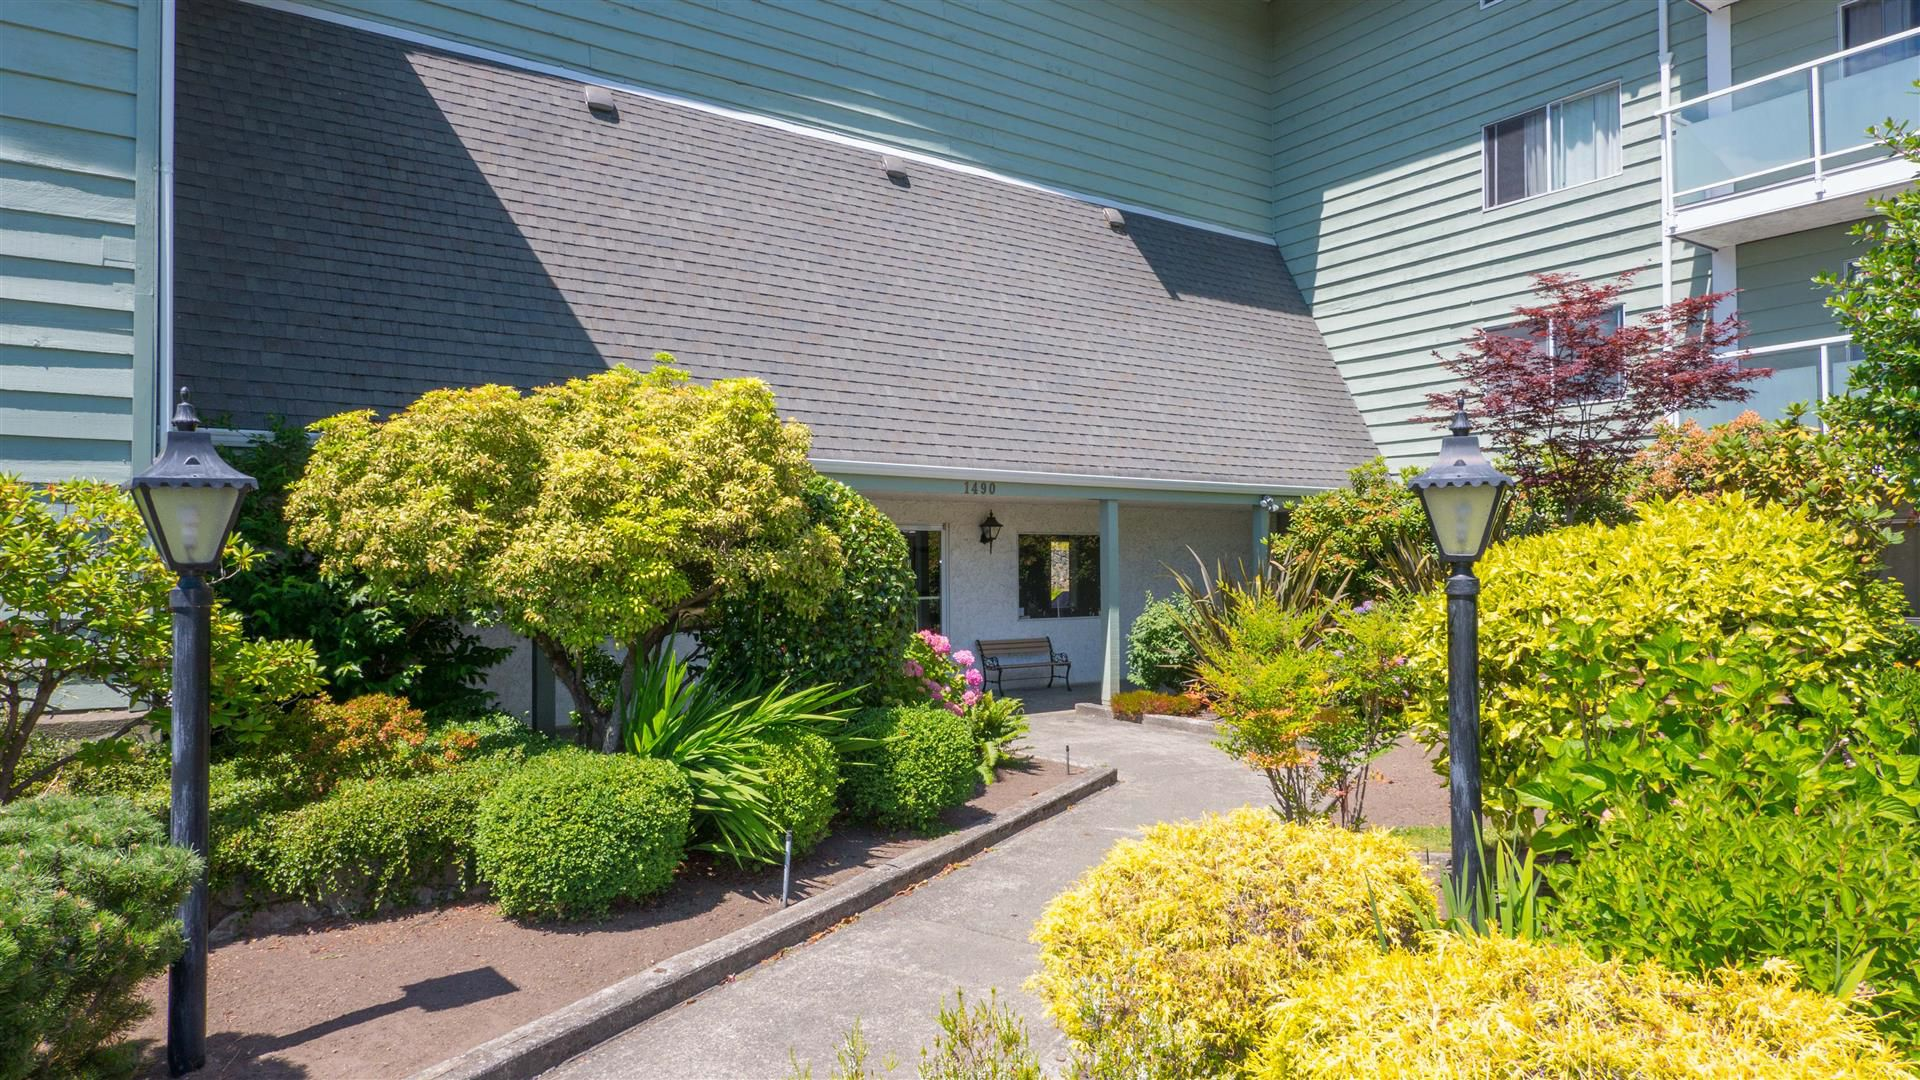 Main Photo:  in VICTORIA: SE Cedar Hill Condo Apartment for sale (Saanich East)  : MLS®# 394783